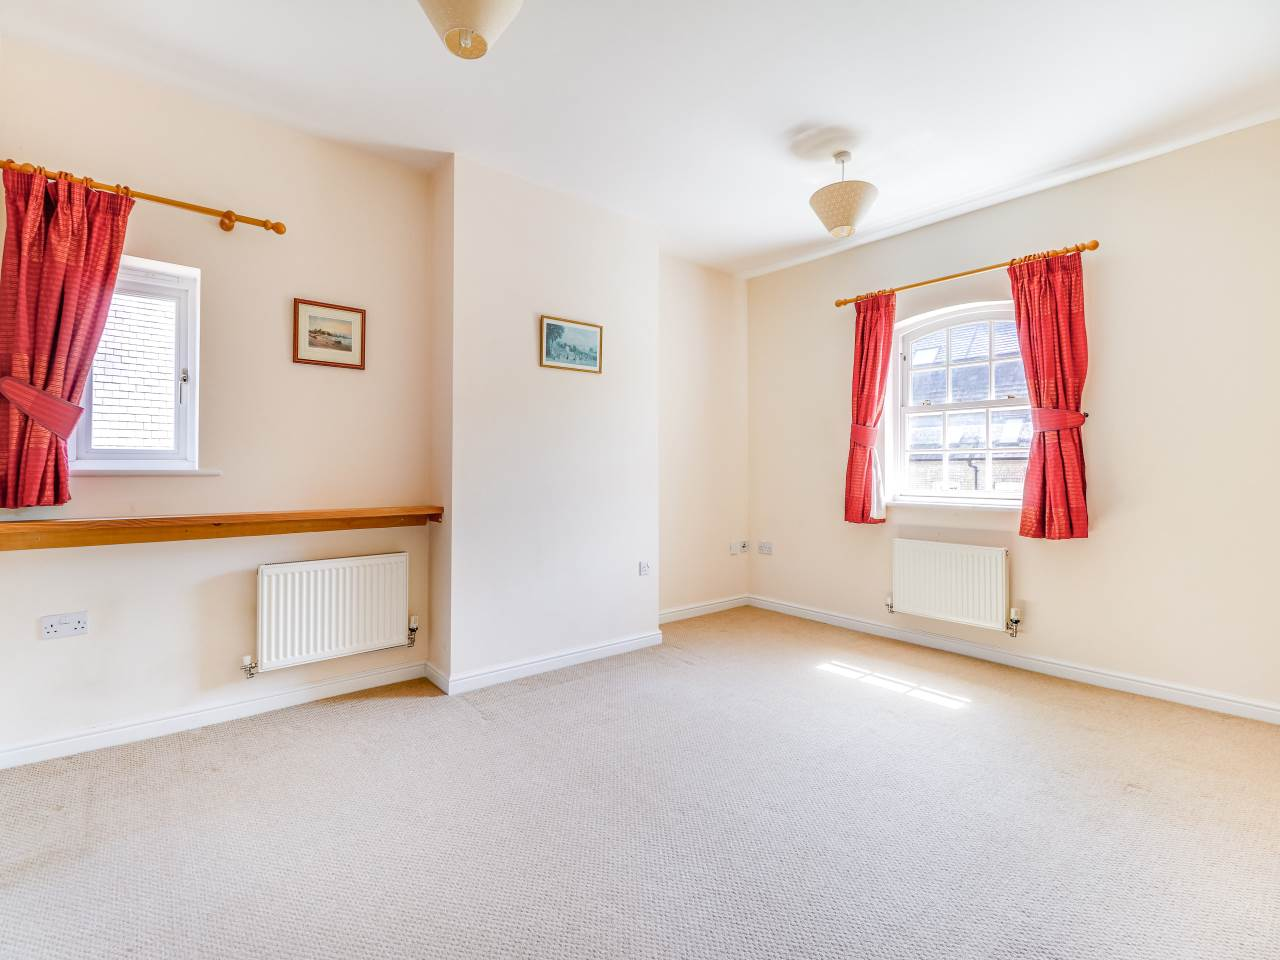 1 bed house for sale in Middlemarch, Fairfield  - Property Image 3